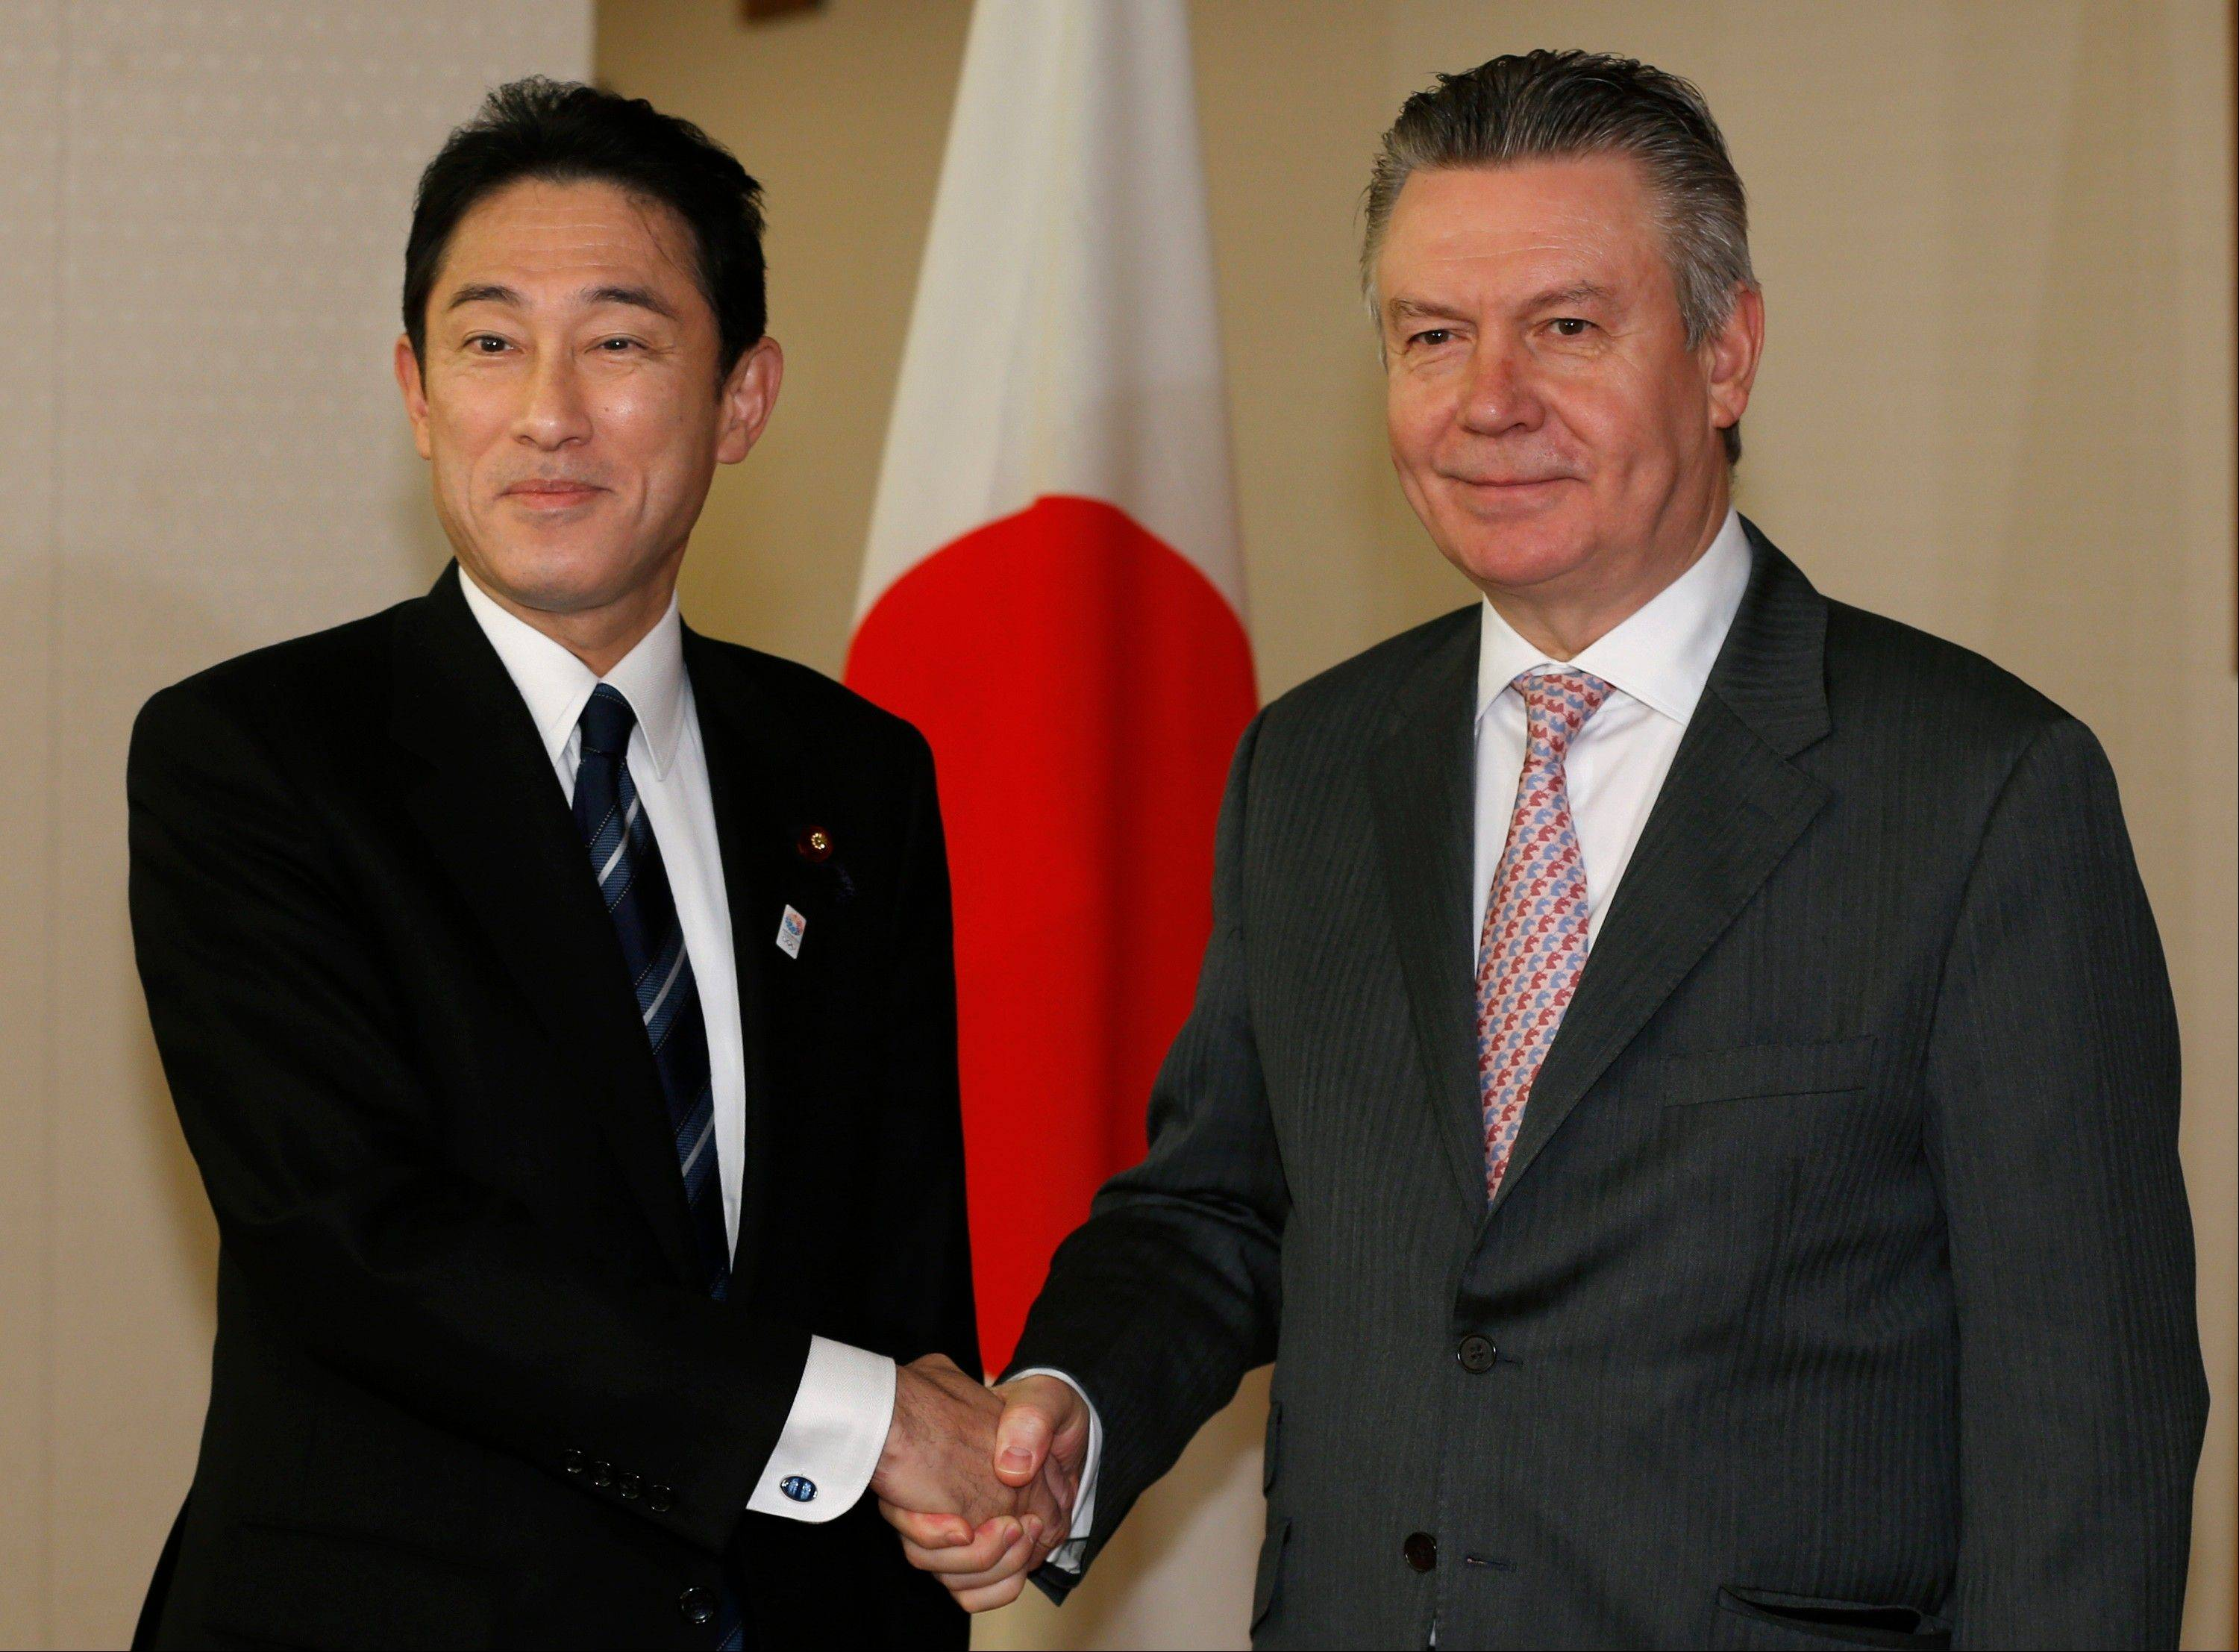 European Trade Commissioner Karel De Gucht, right, and Japanese Foreign Minister Fumio Kishida pose for photographers Monday prior to their meeting at the Foreign Ministry in Tokyo. De Gucht is in Tokyo and meeting with Japanese government and business officials as scheduled.